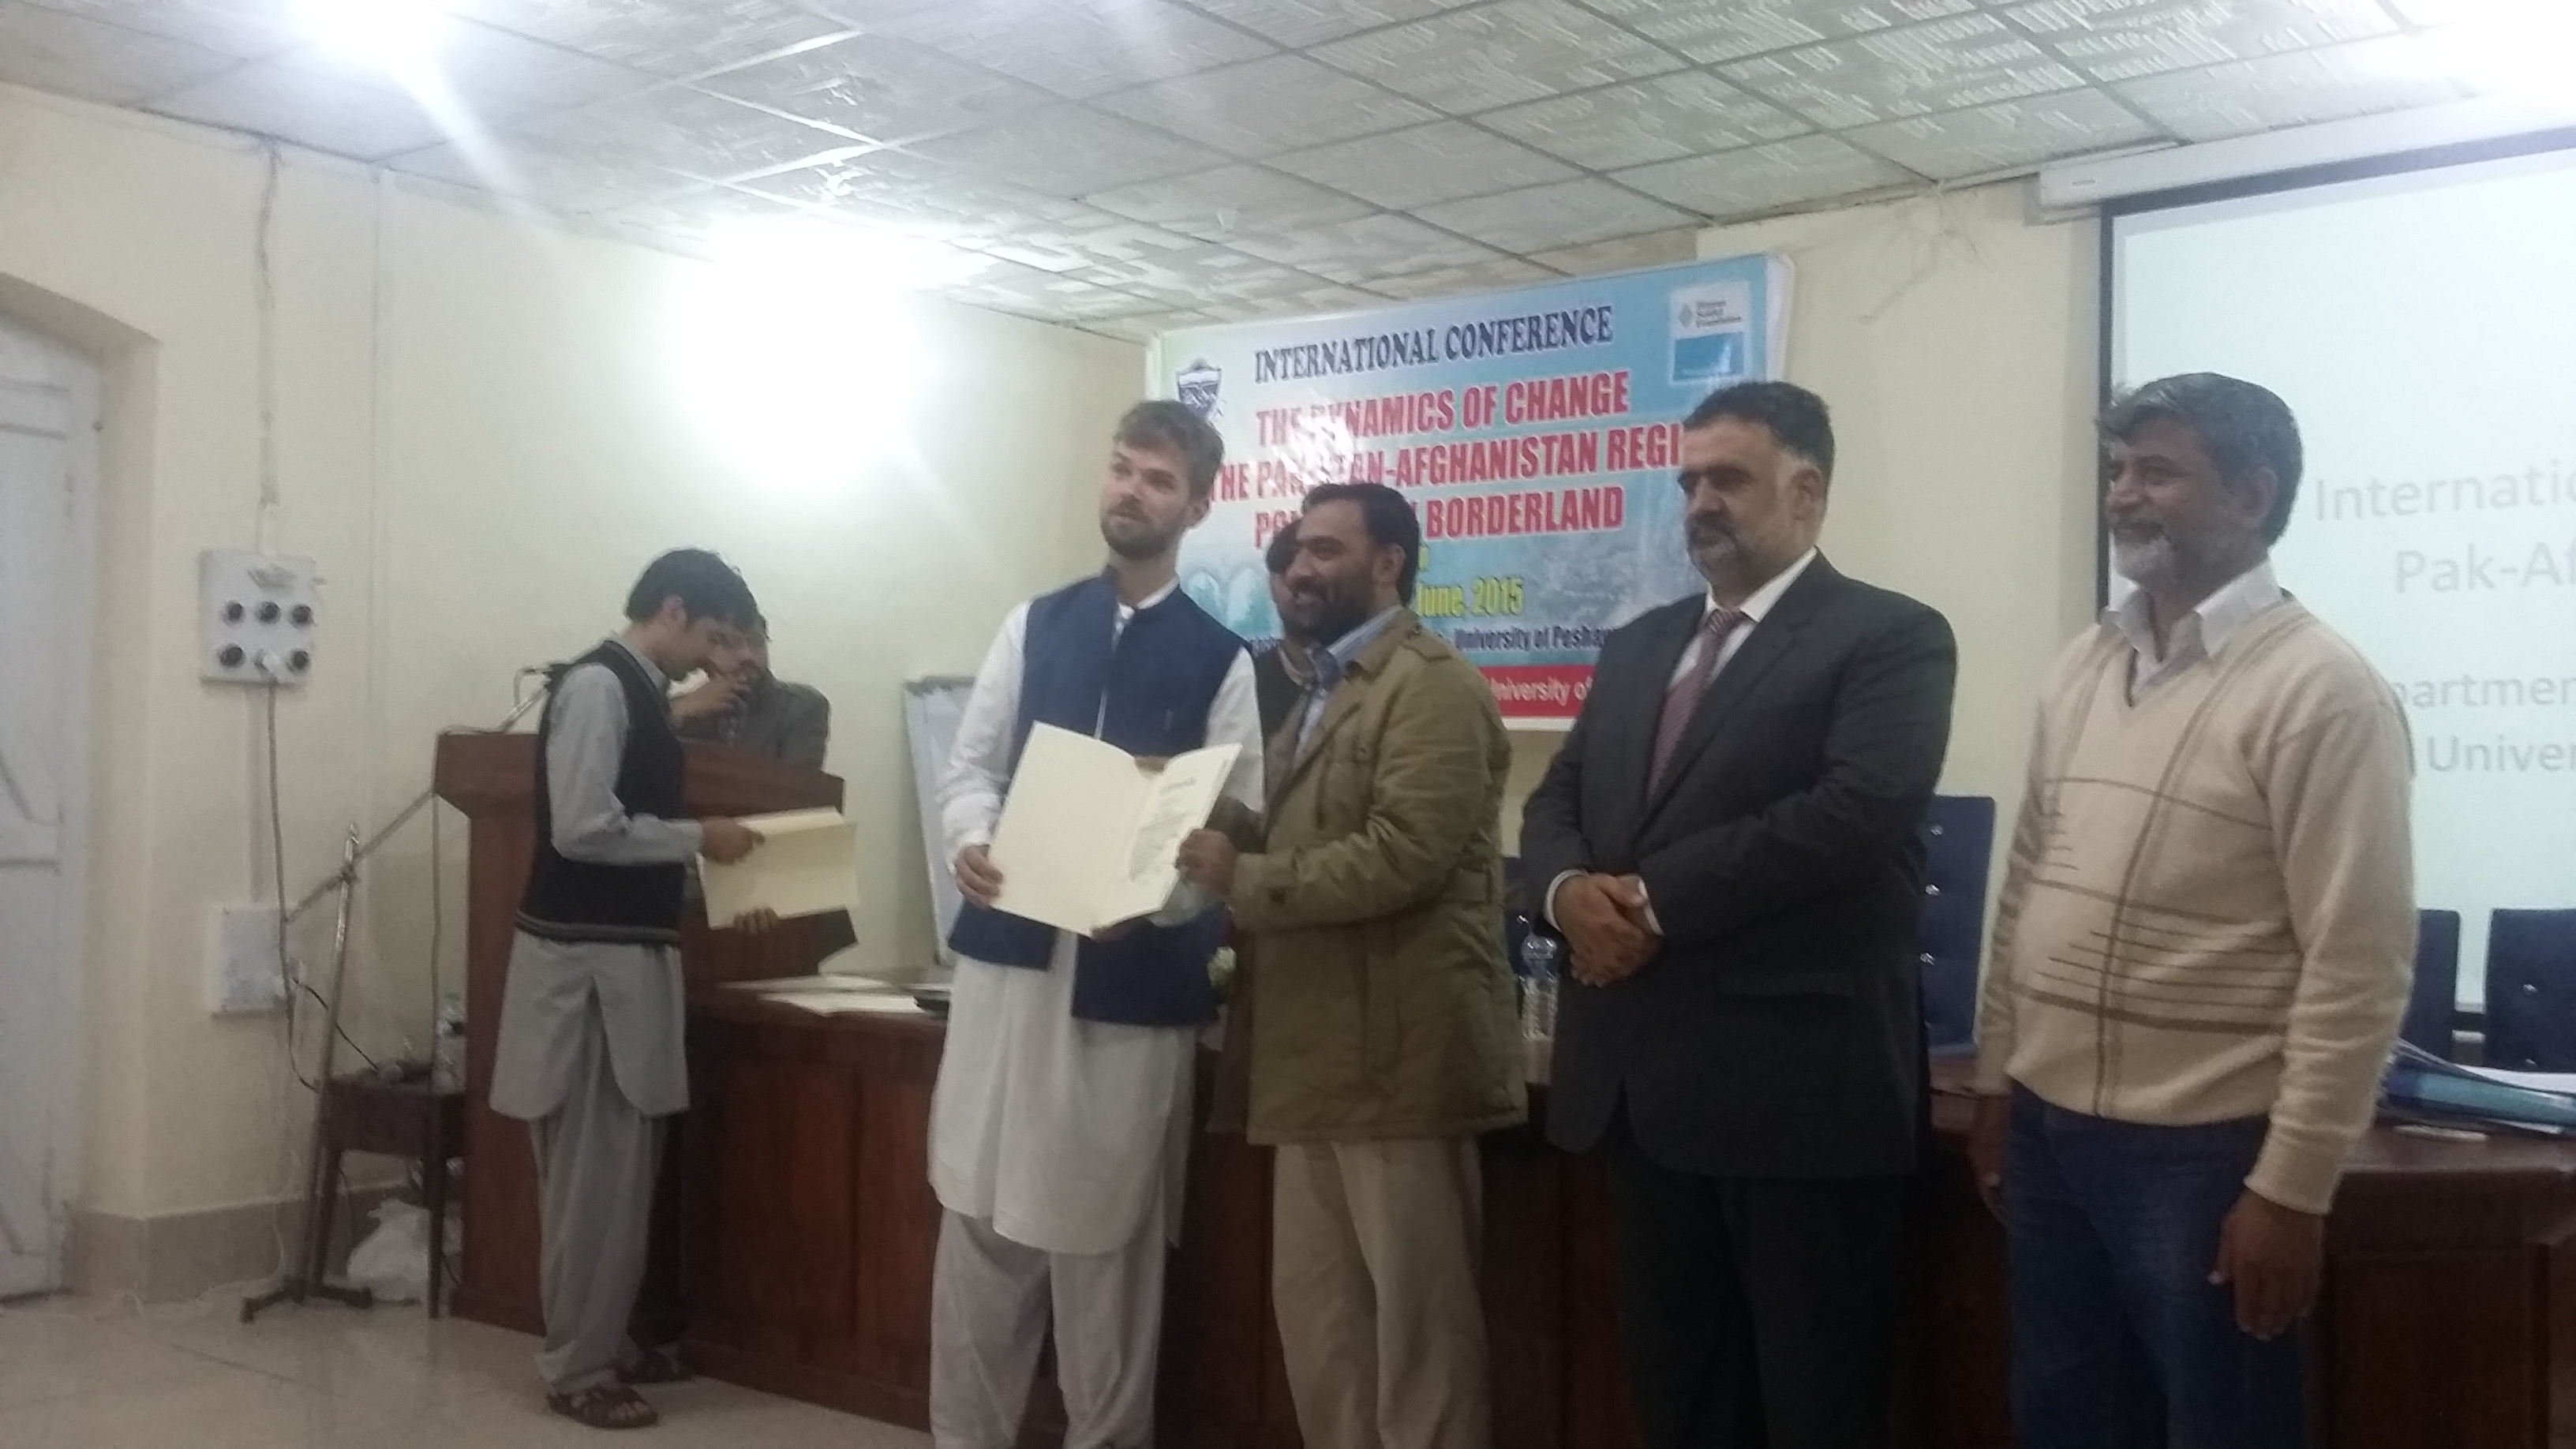 Mr. Bilal Shaukat receiving his certificate